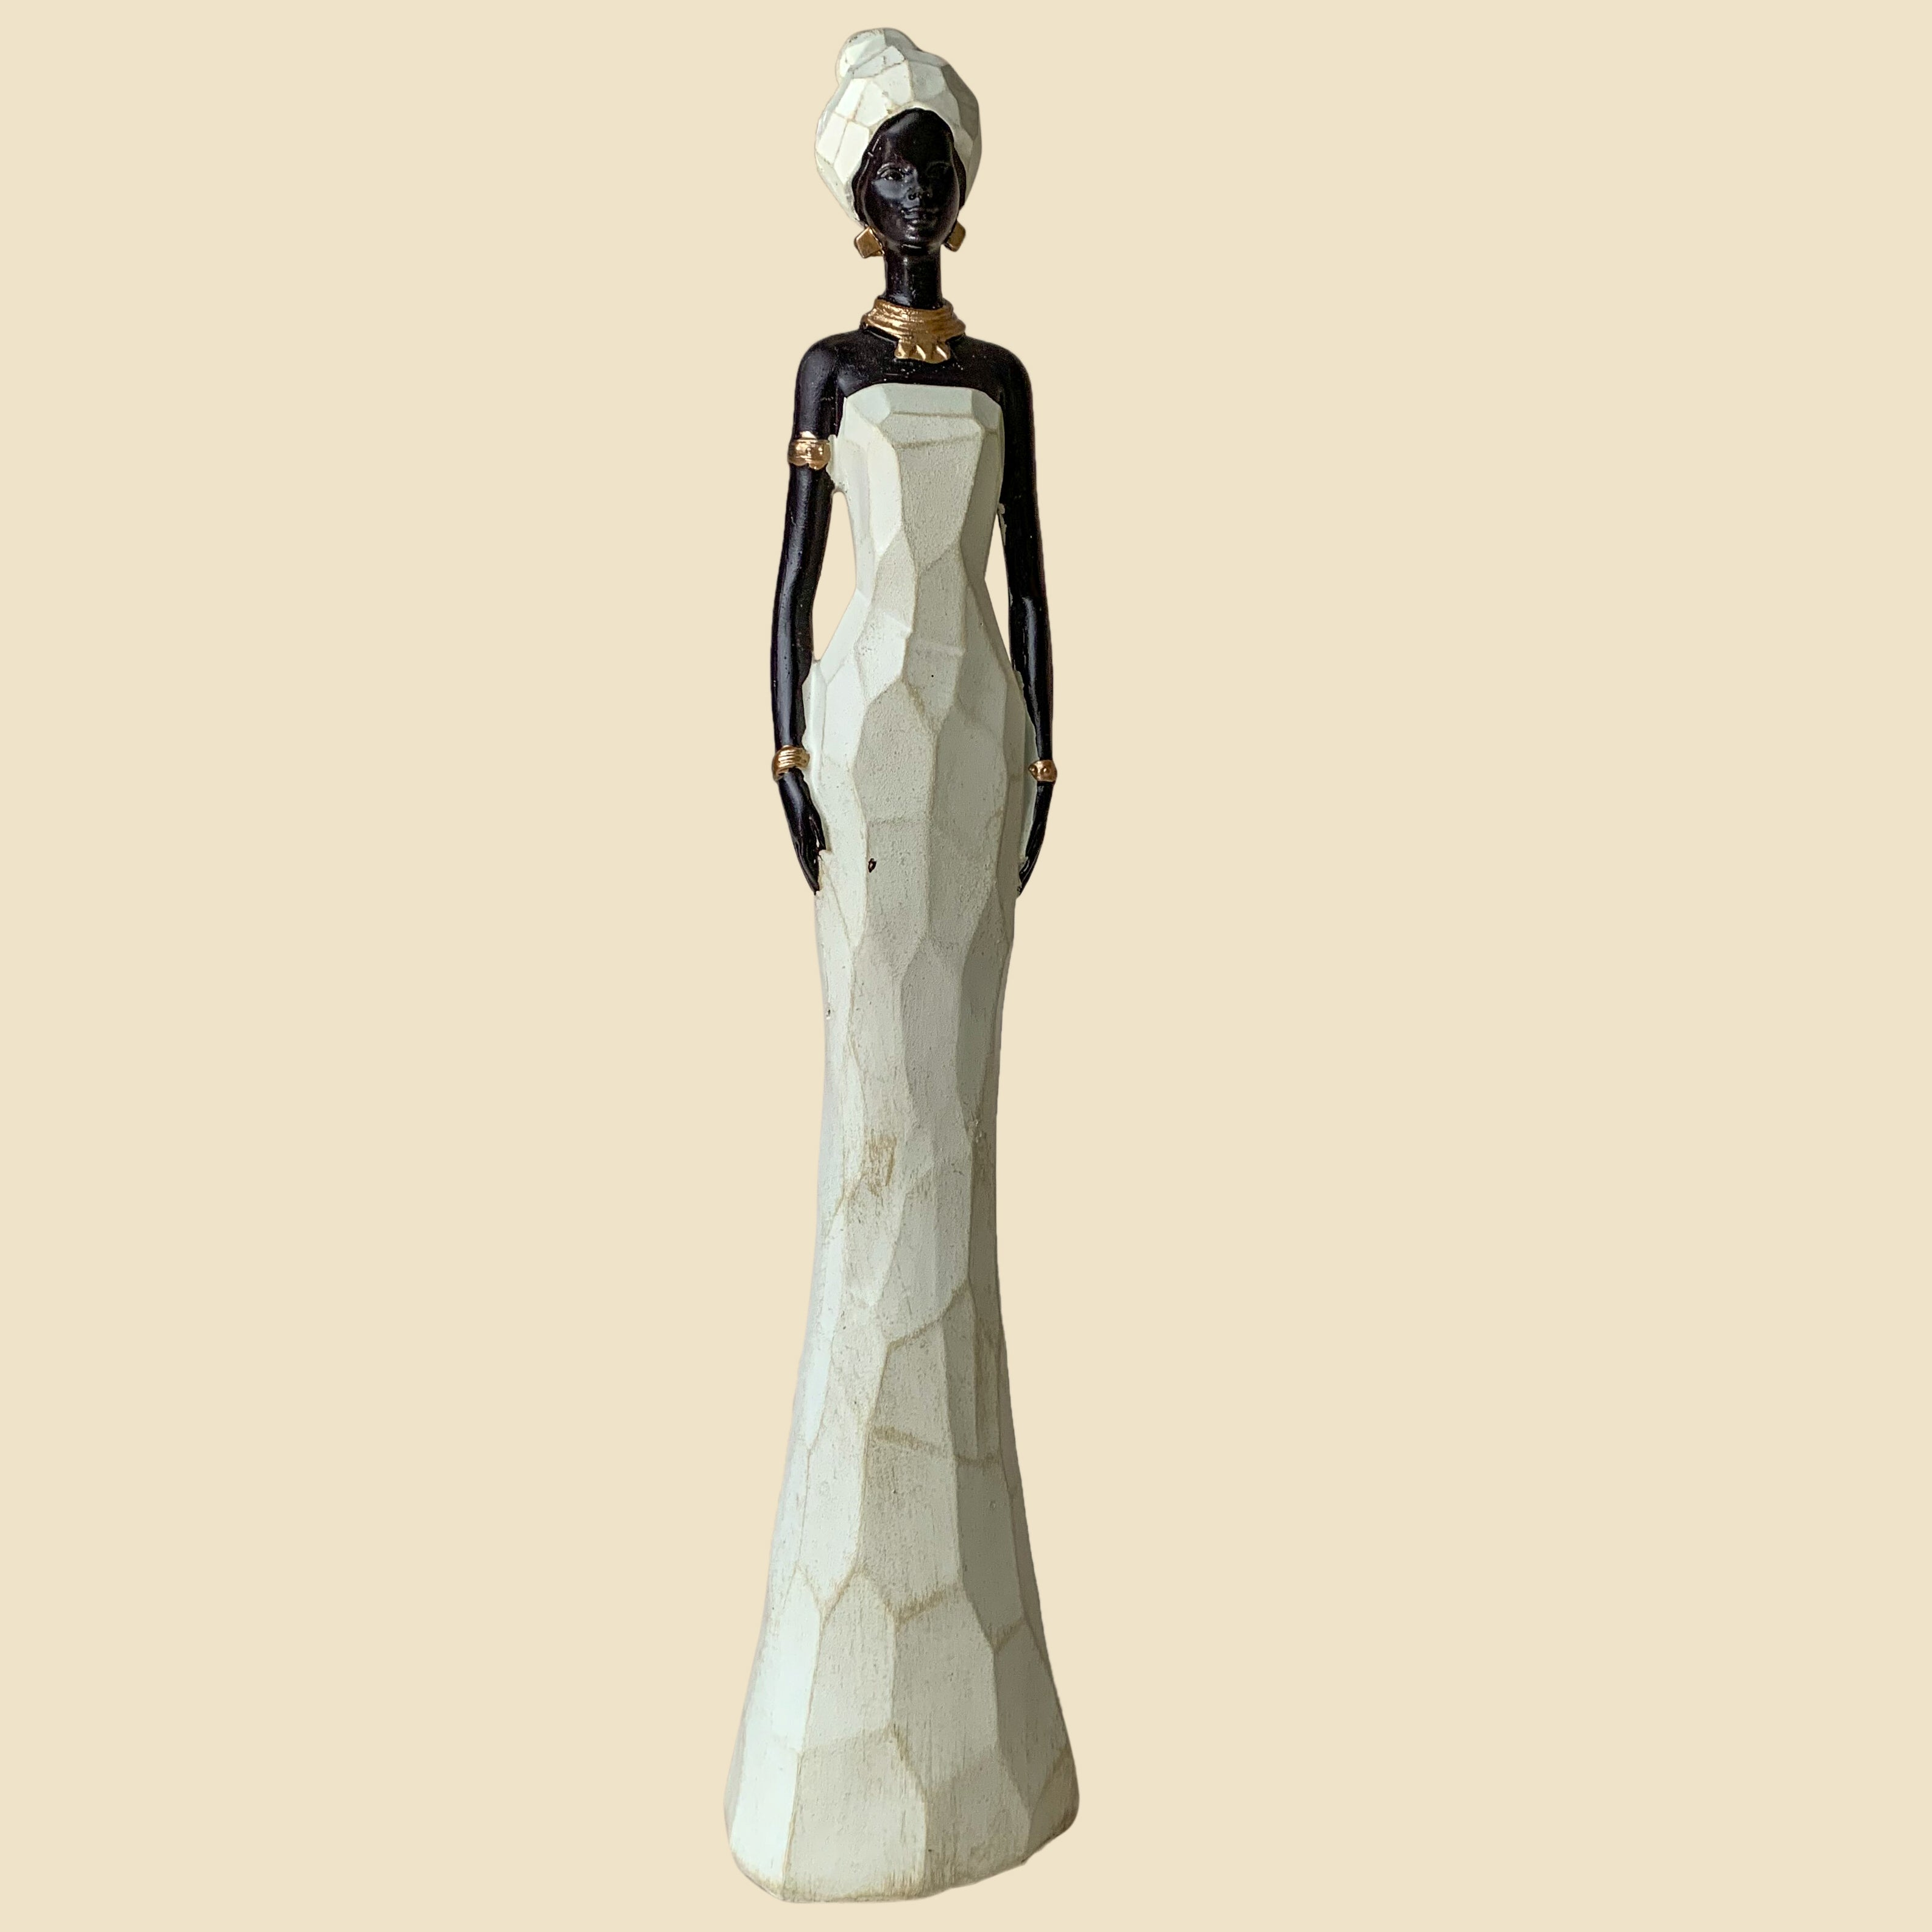 Trudy white and black figurine (large)